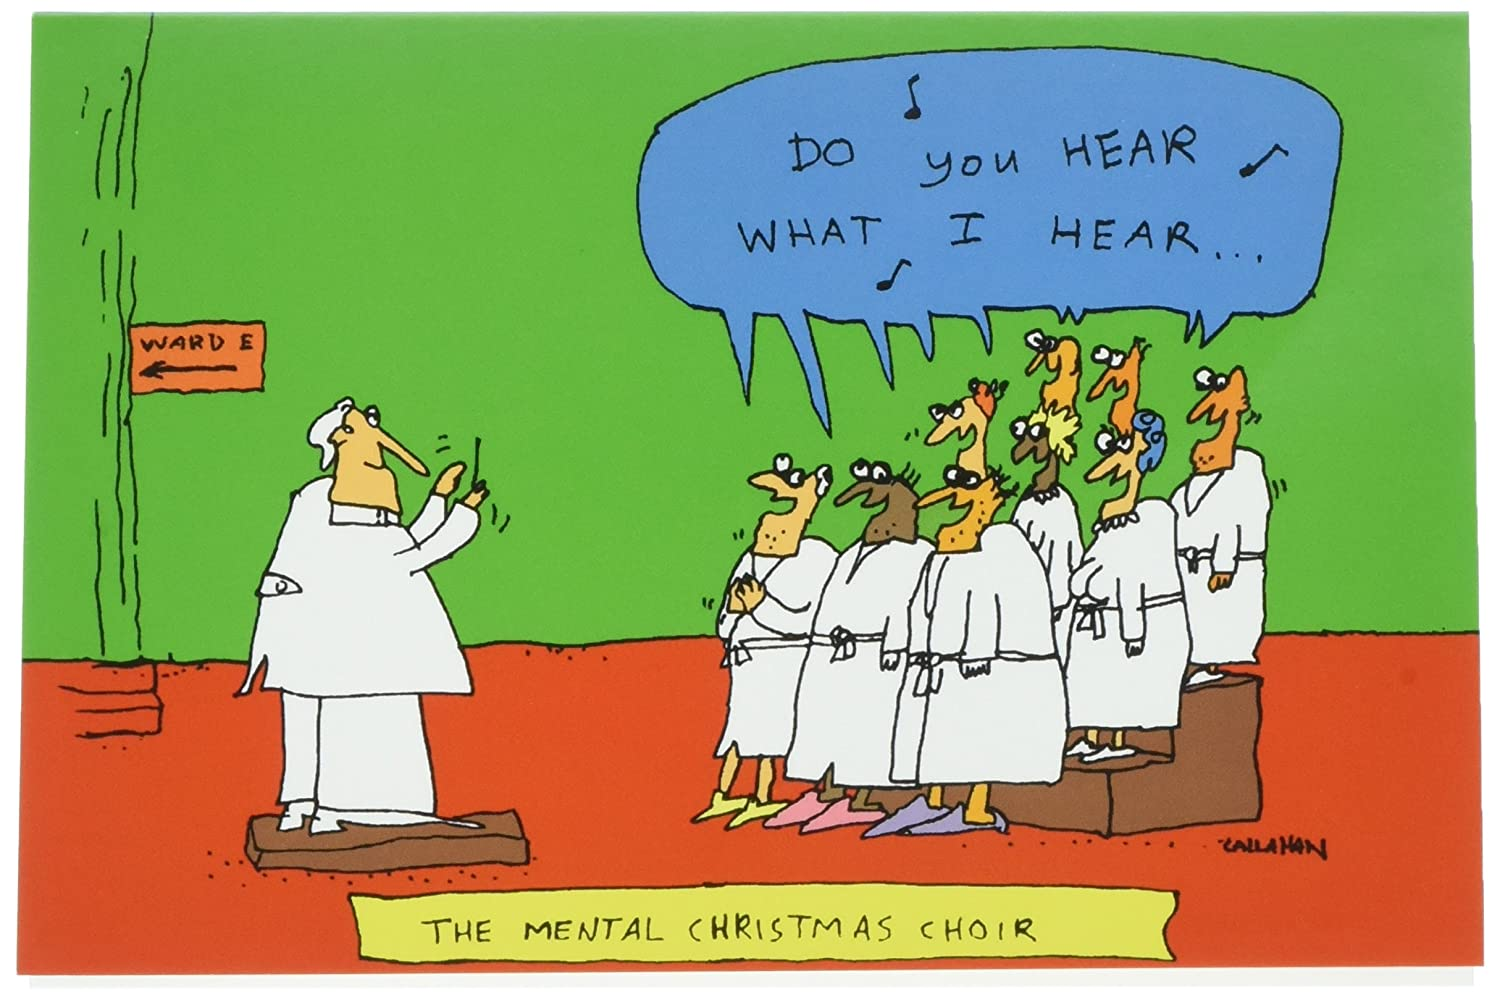 Amazon 1504 mental choir funny merry christmas greeting amazon 1504 mental choir funny merry christmas greeting card with 5 x 7 envelope by nobleworks office products kristyandbryce Image collections